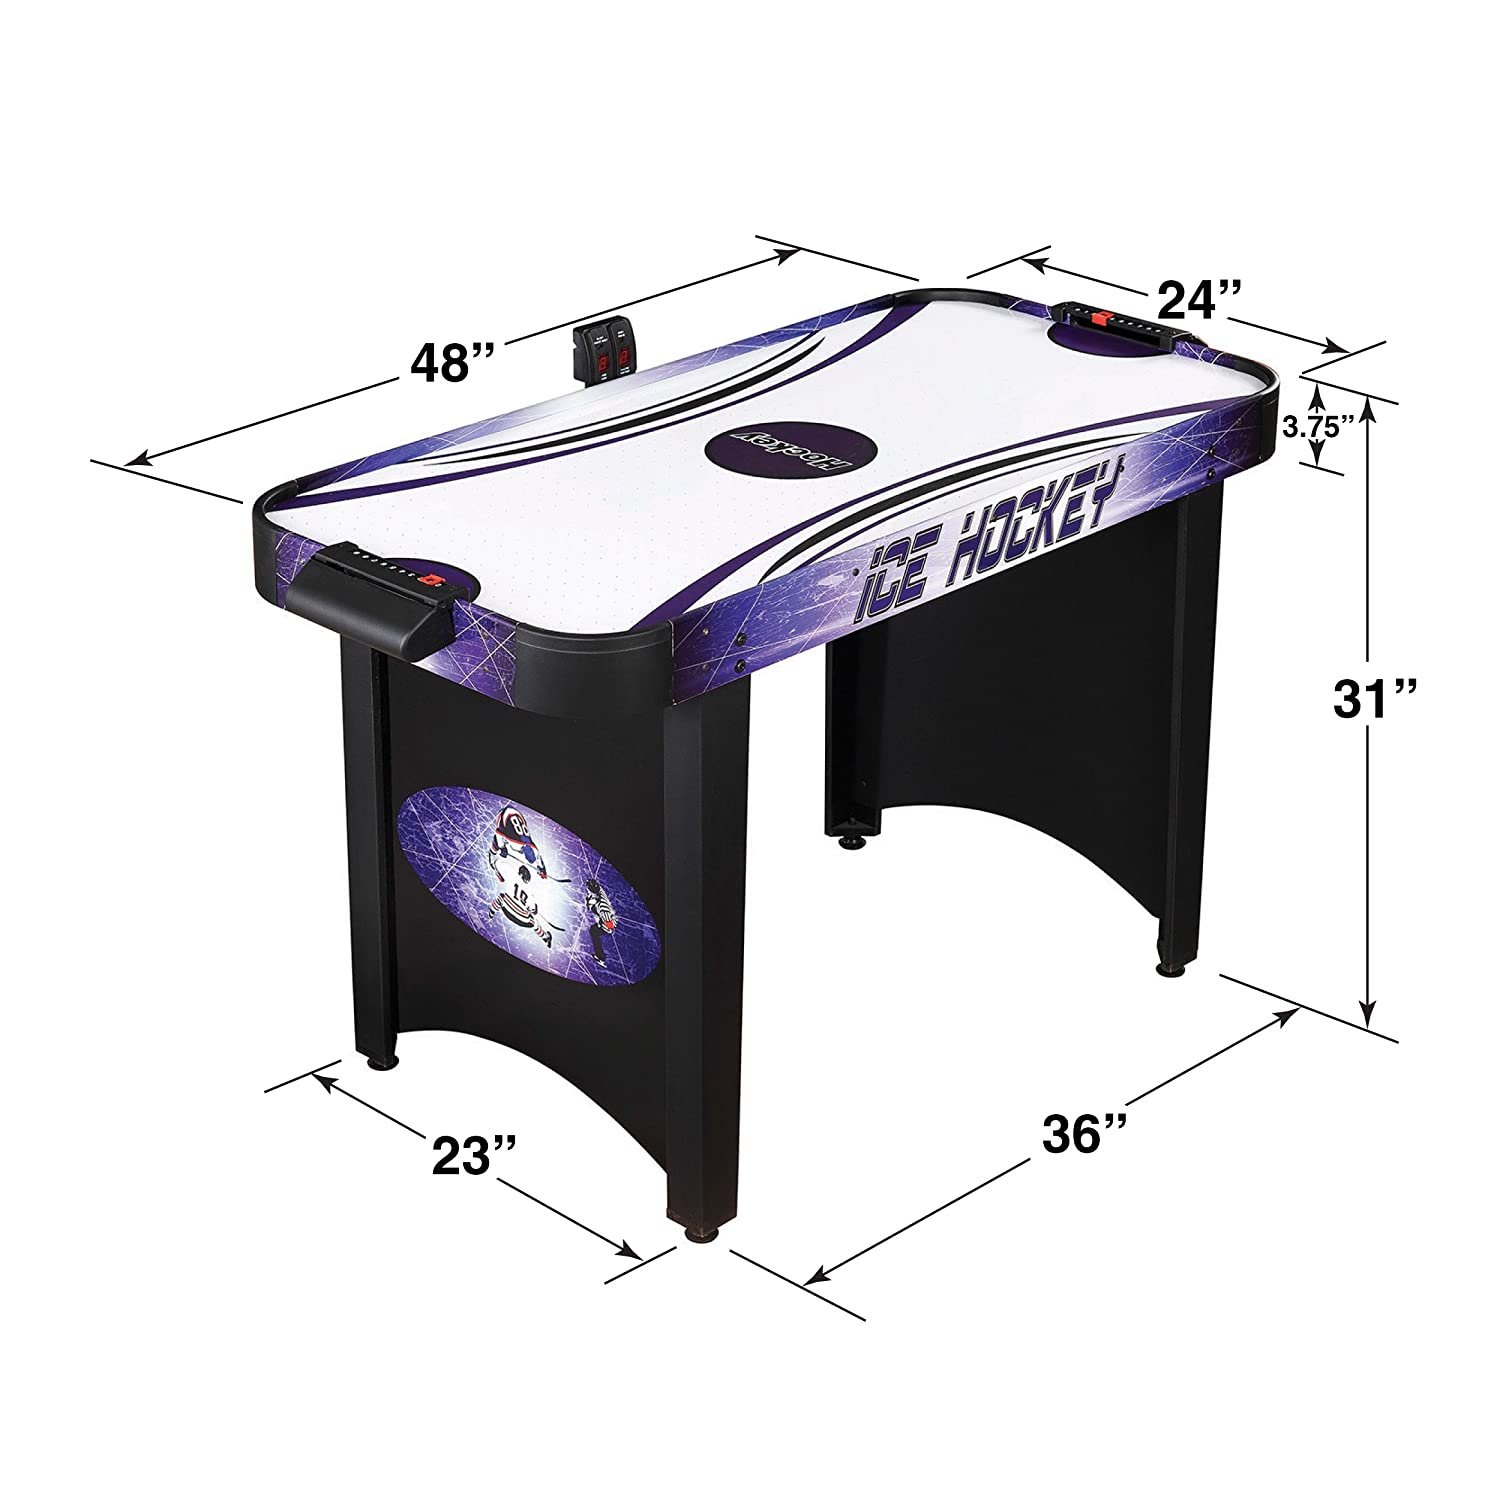 Amazon Com Hathaway Hat Trick 4 Ft Air Hockey Table For Kids And